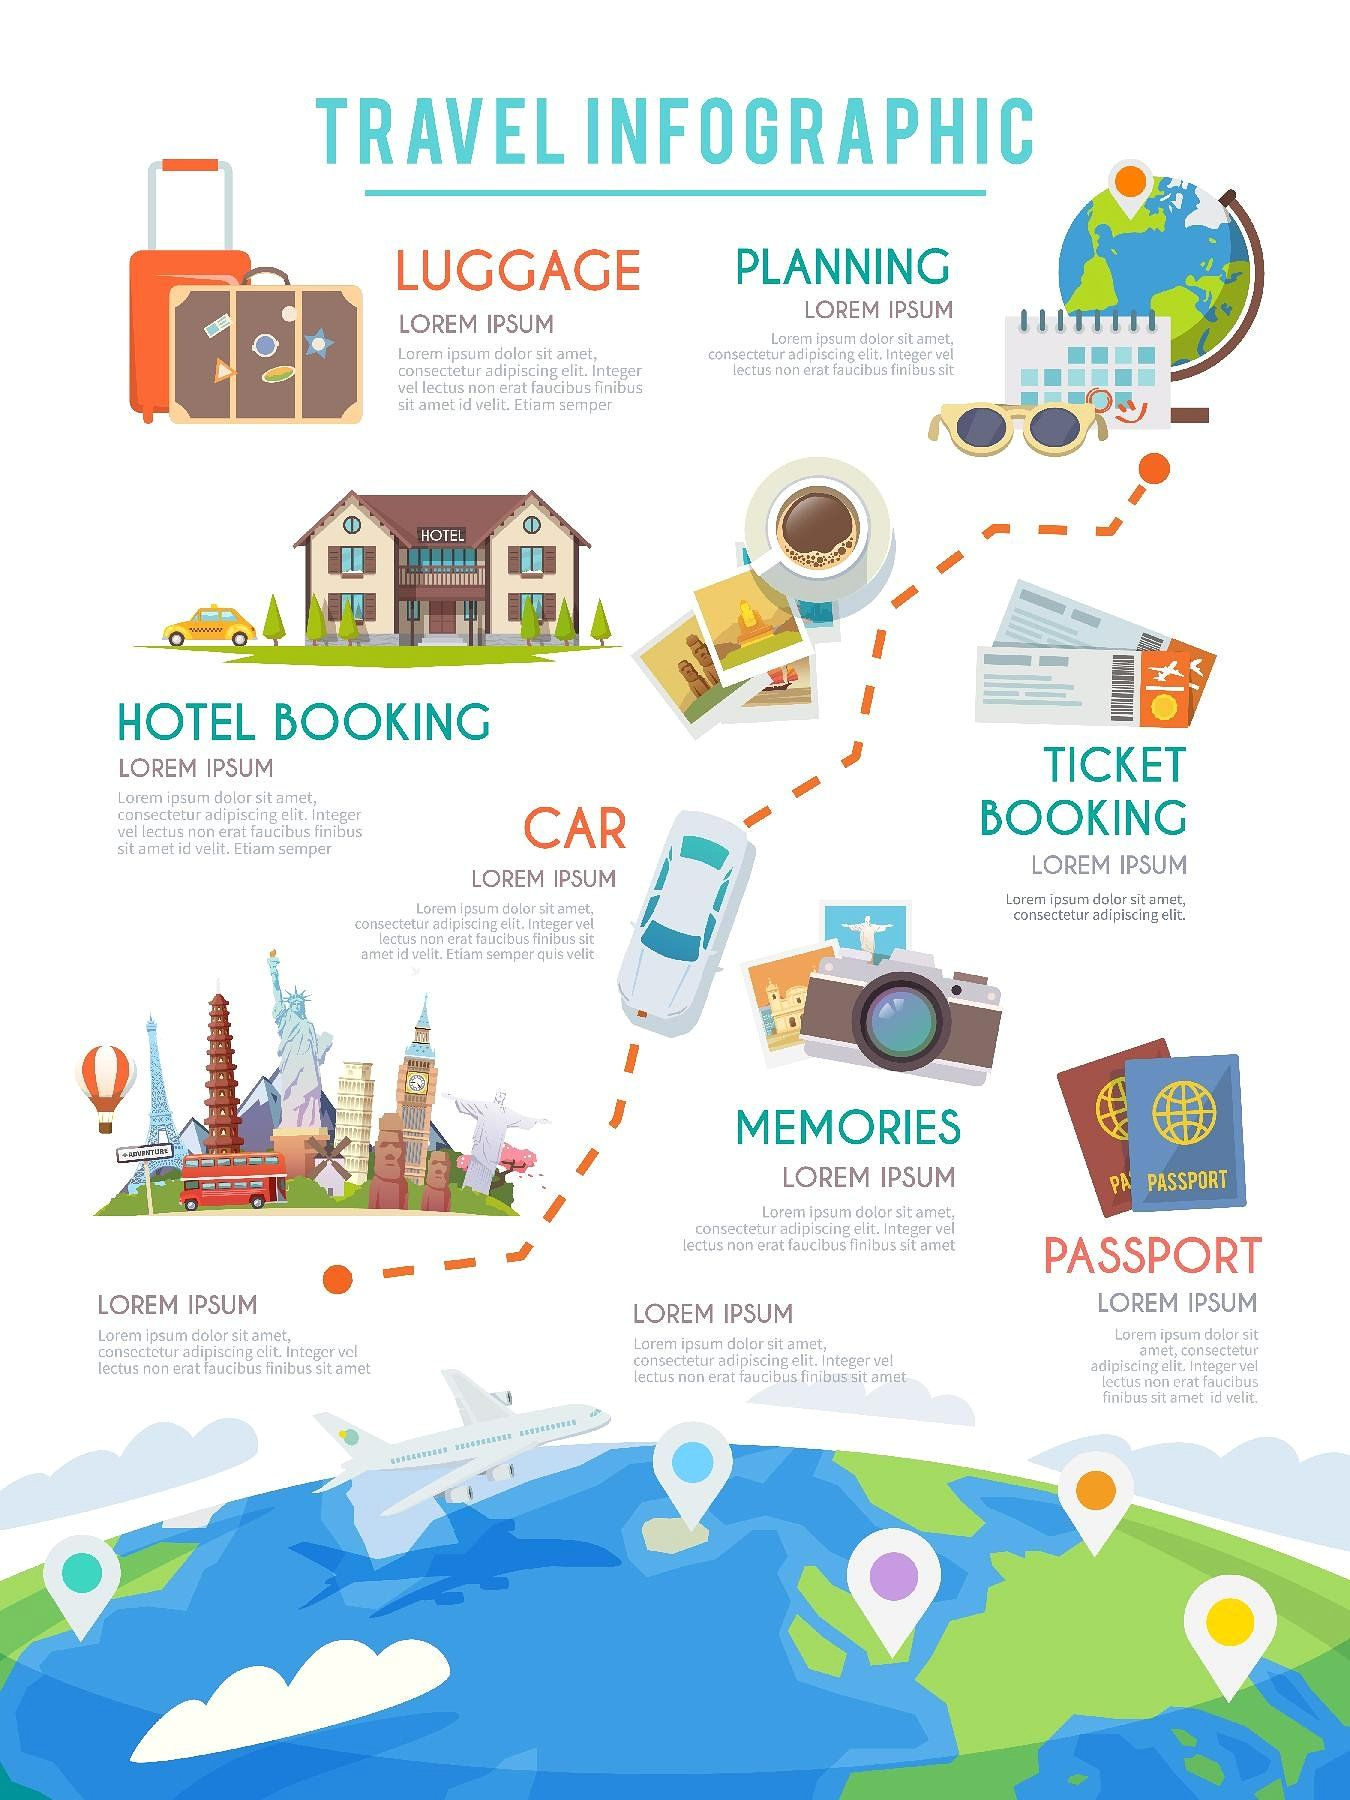 Travel Infographic VacationWorldTripTourism Travel